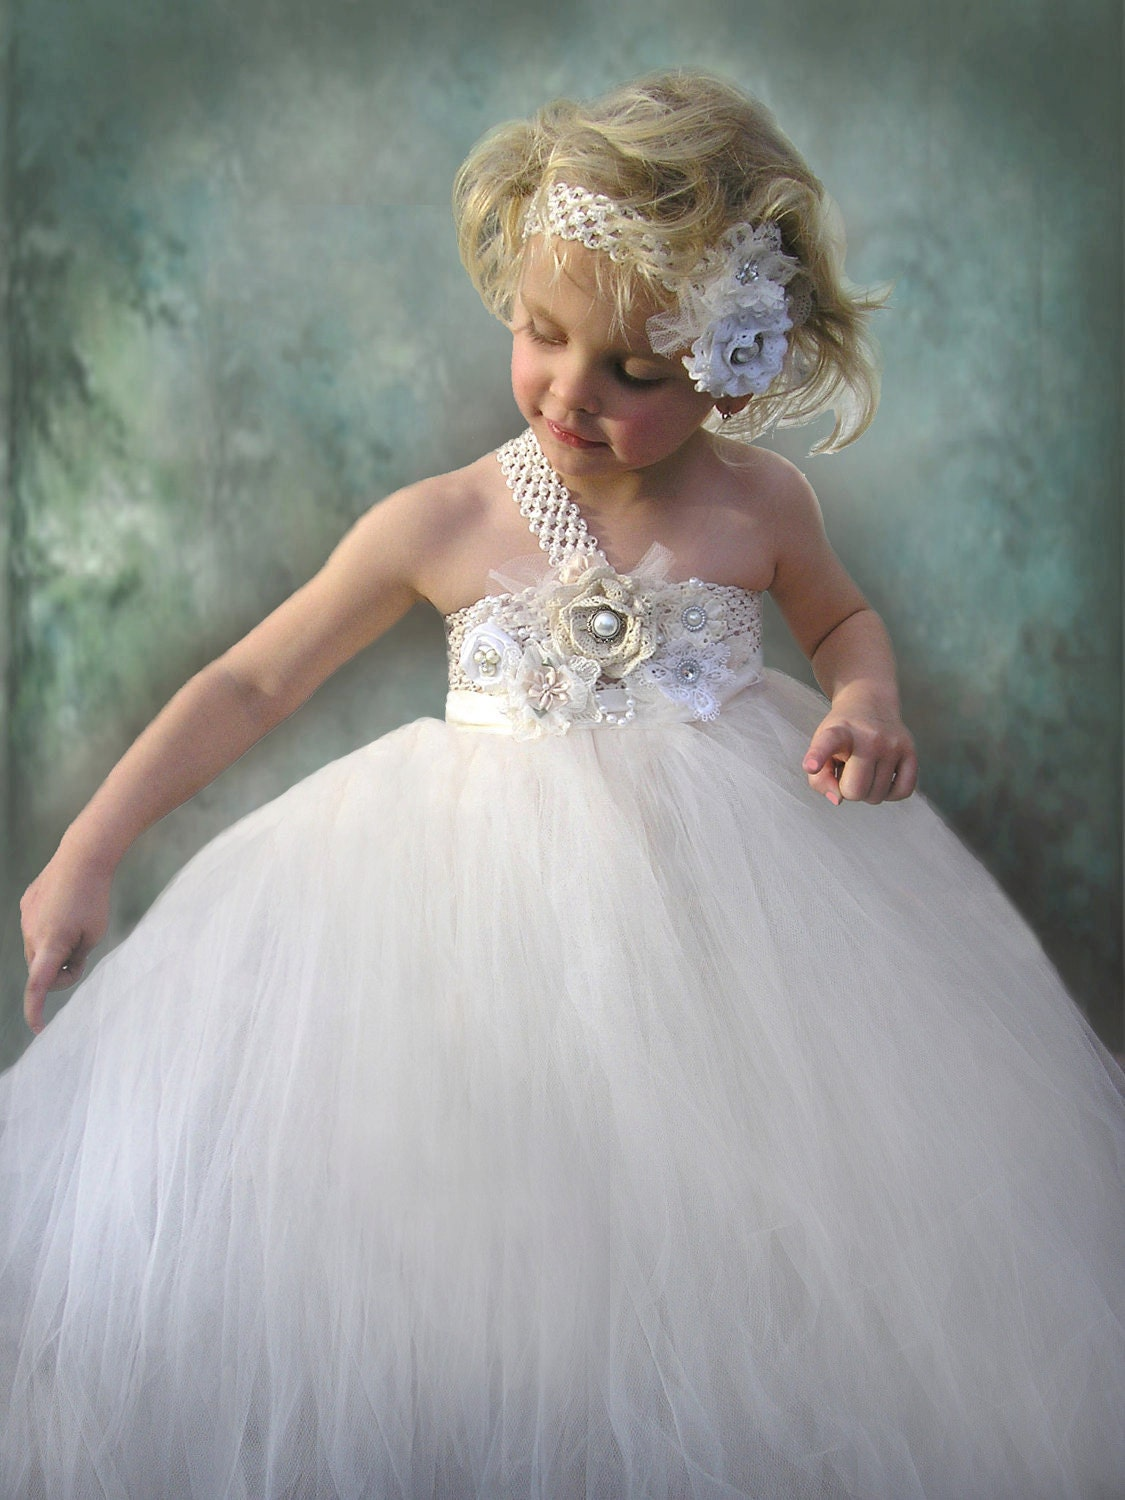 Flower Girl Dress in sizes newborn to 12 years by Jillybeantutus